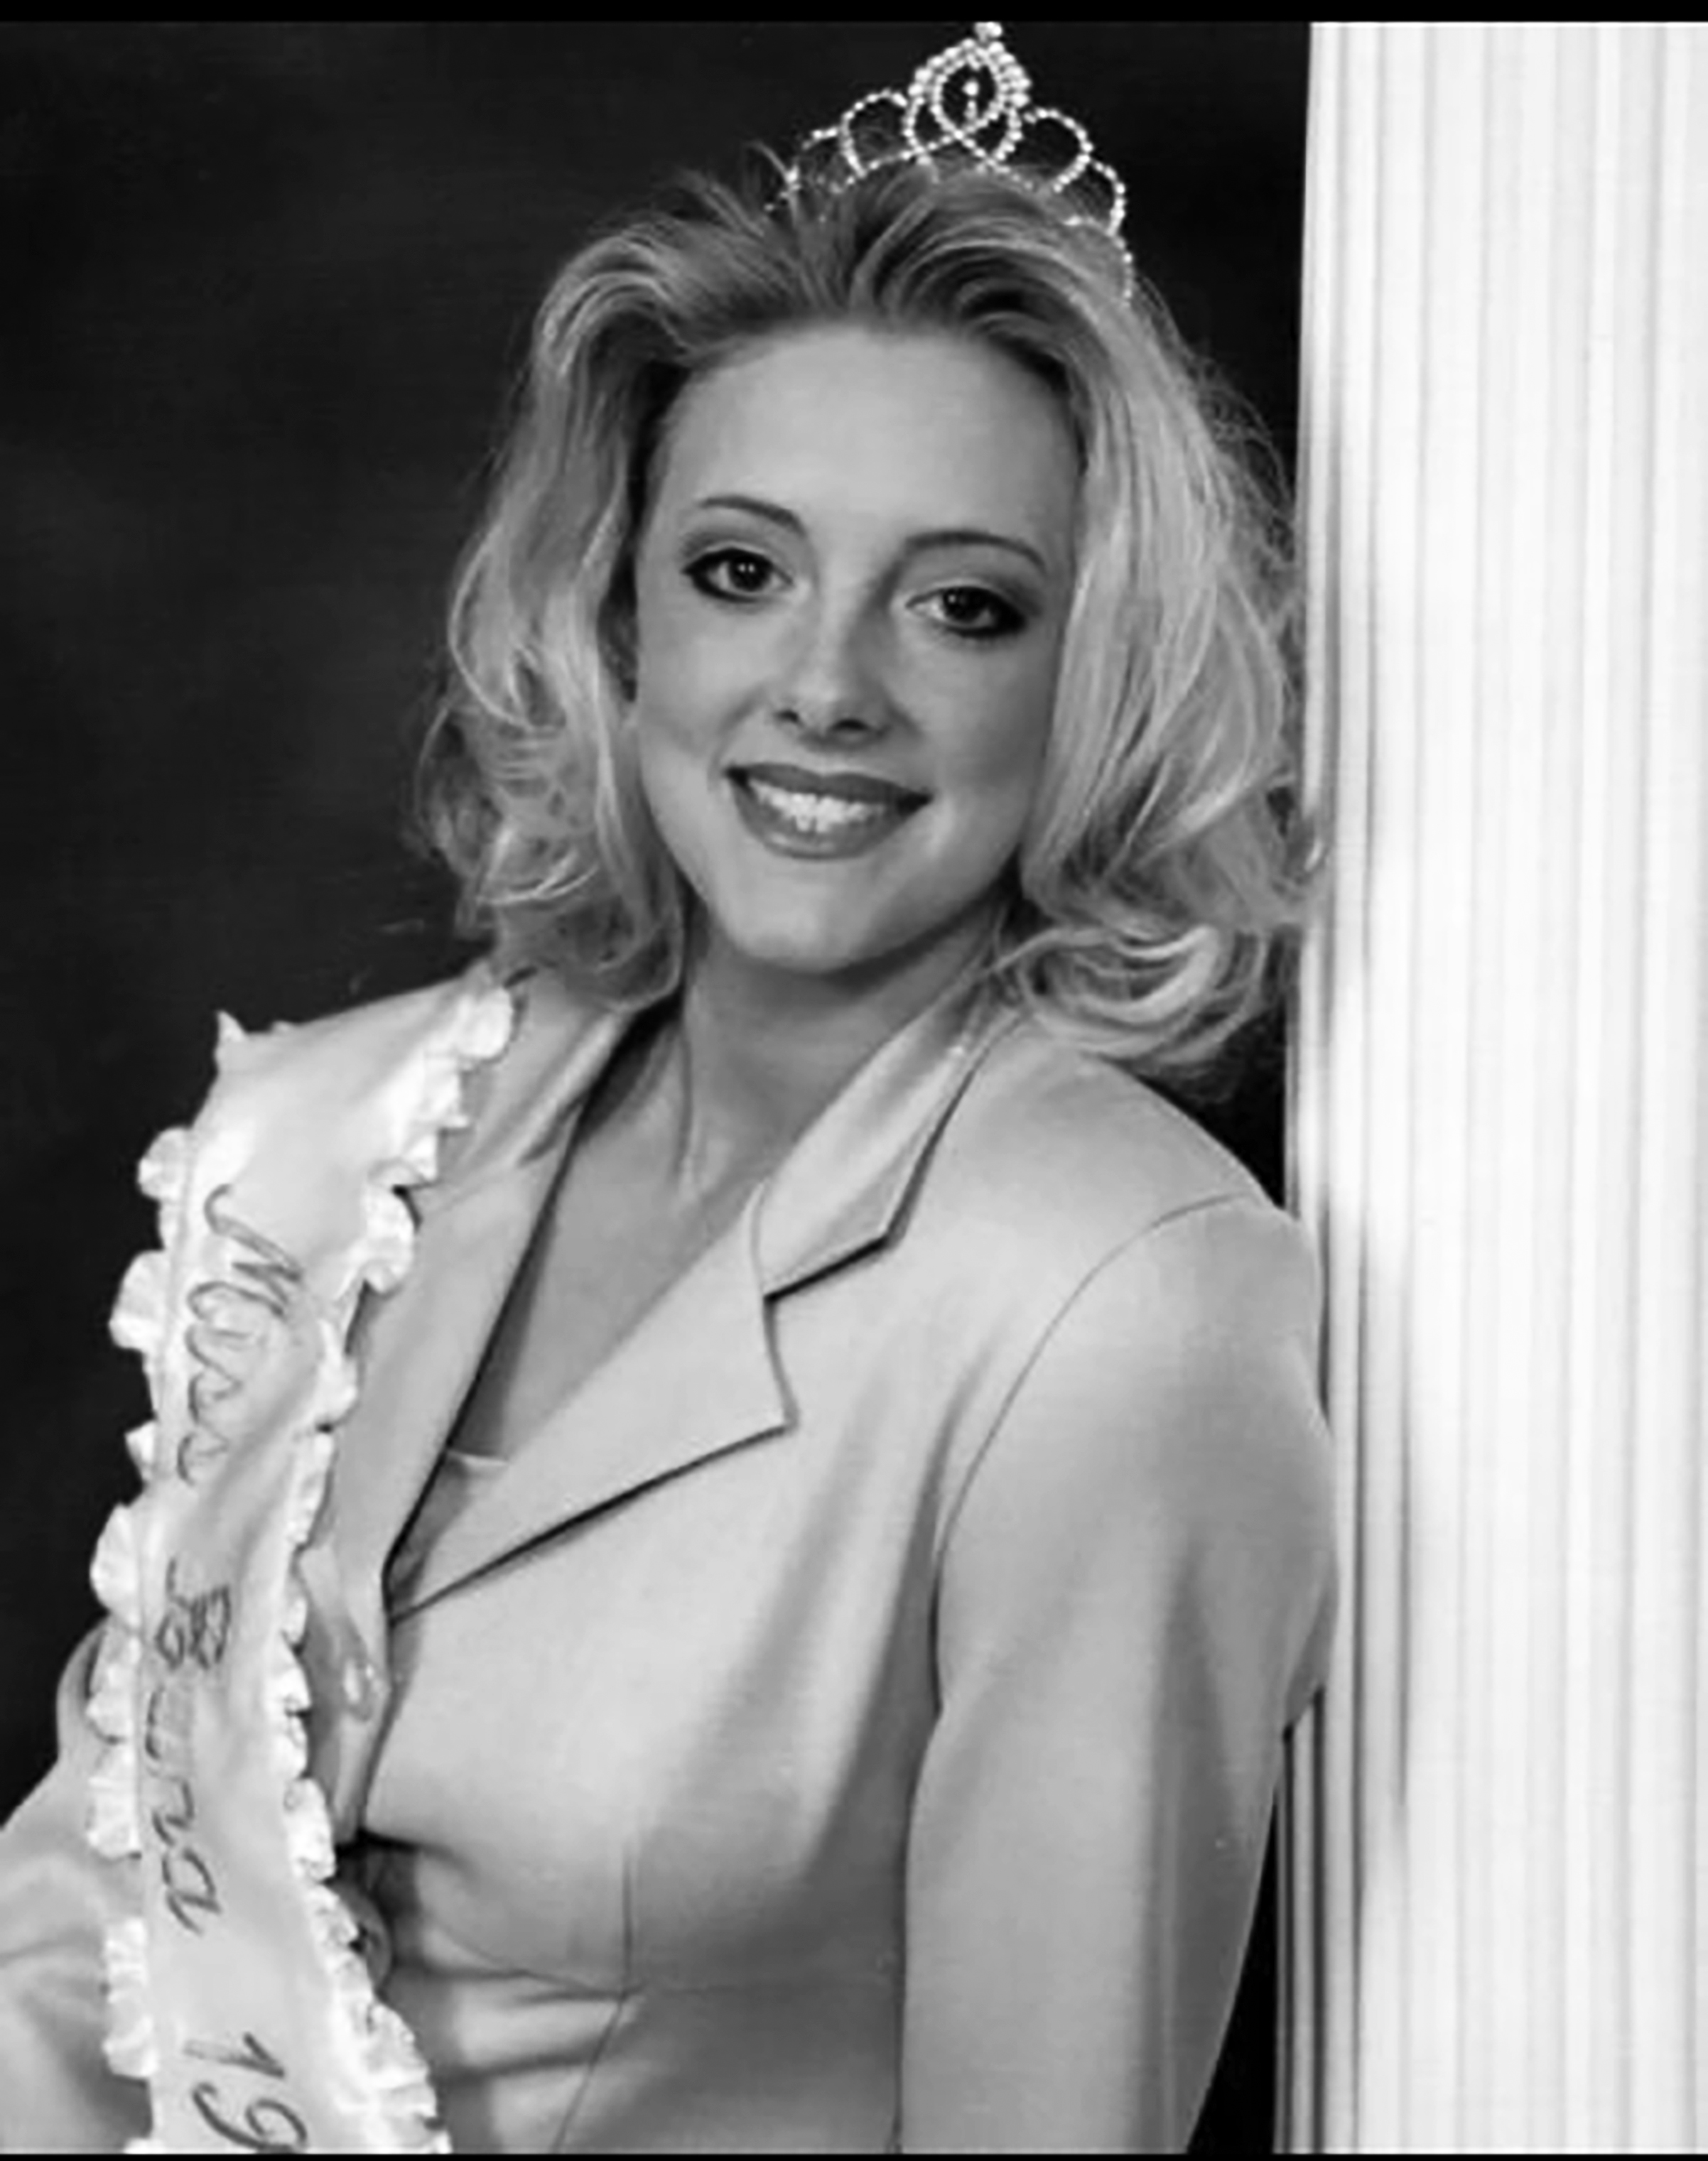 Amber Avery Smith - Miss Buna 1997